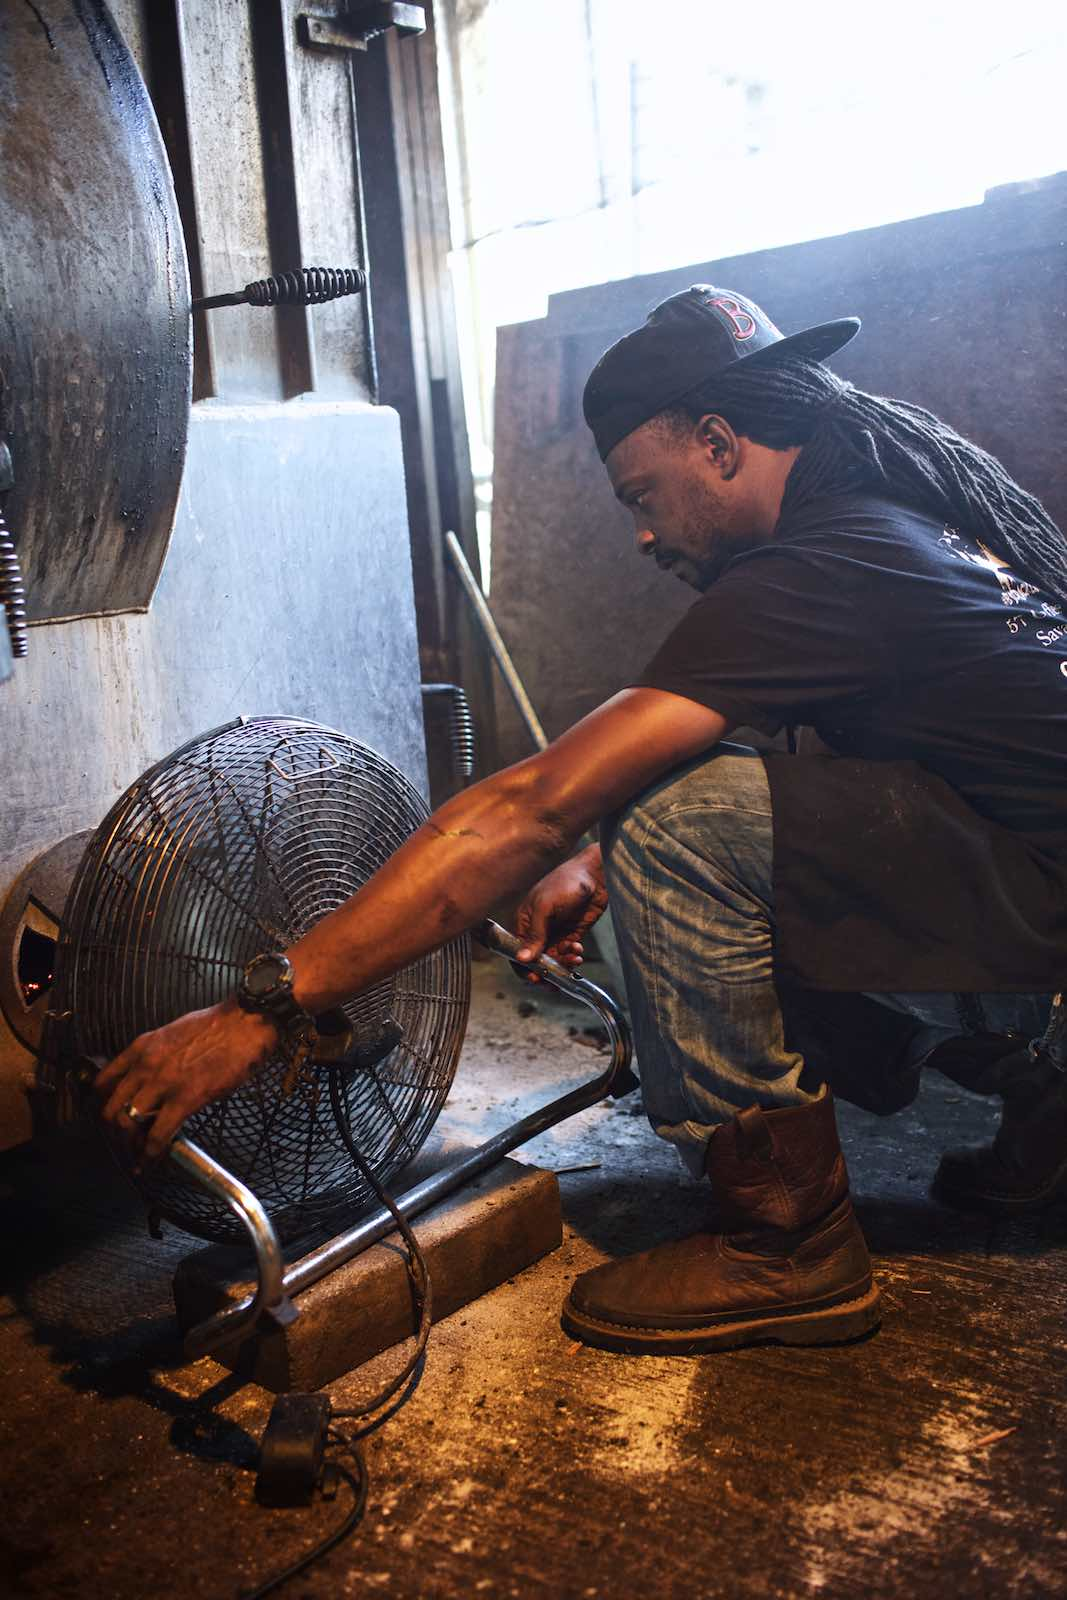 Chef adjusting fan in an open kitchen.